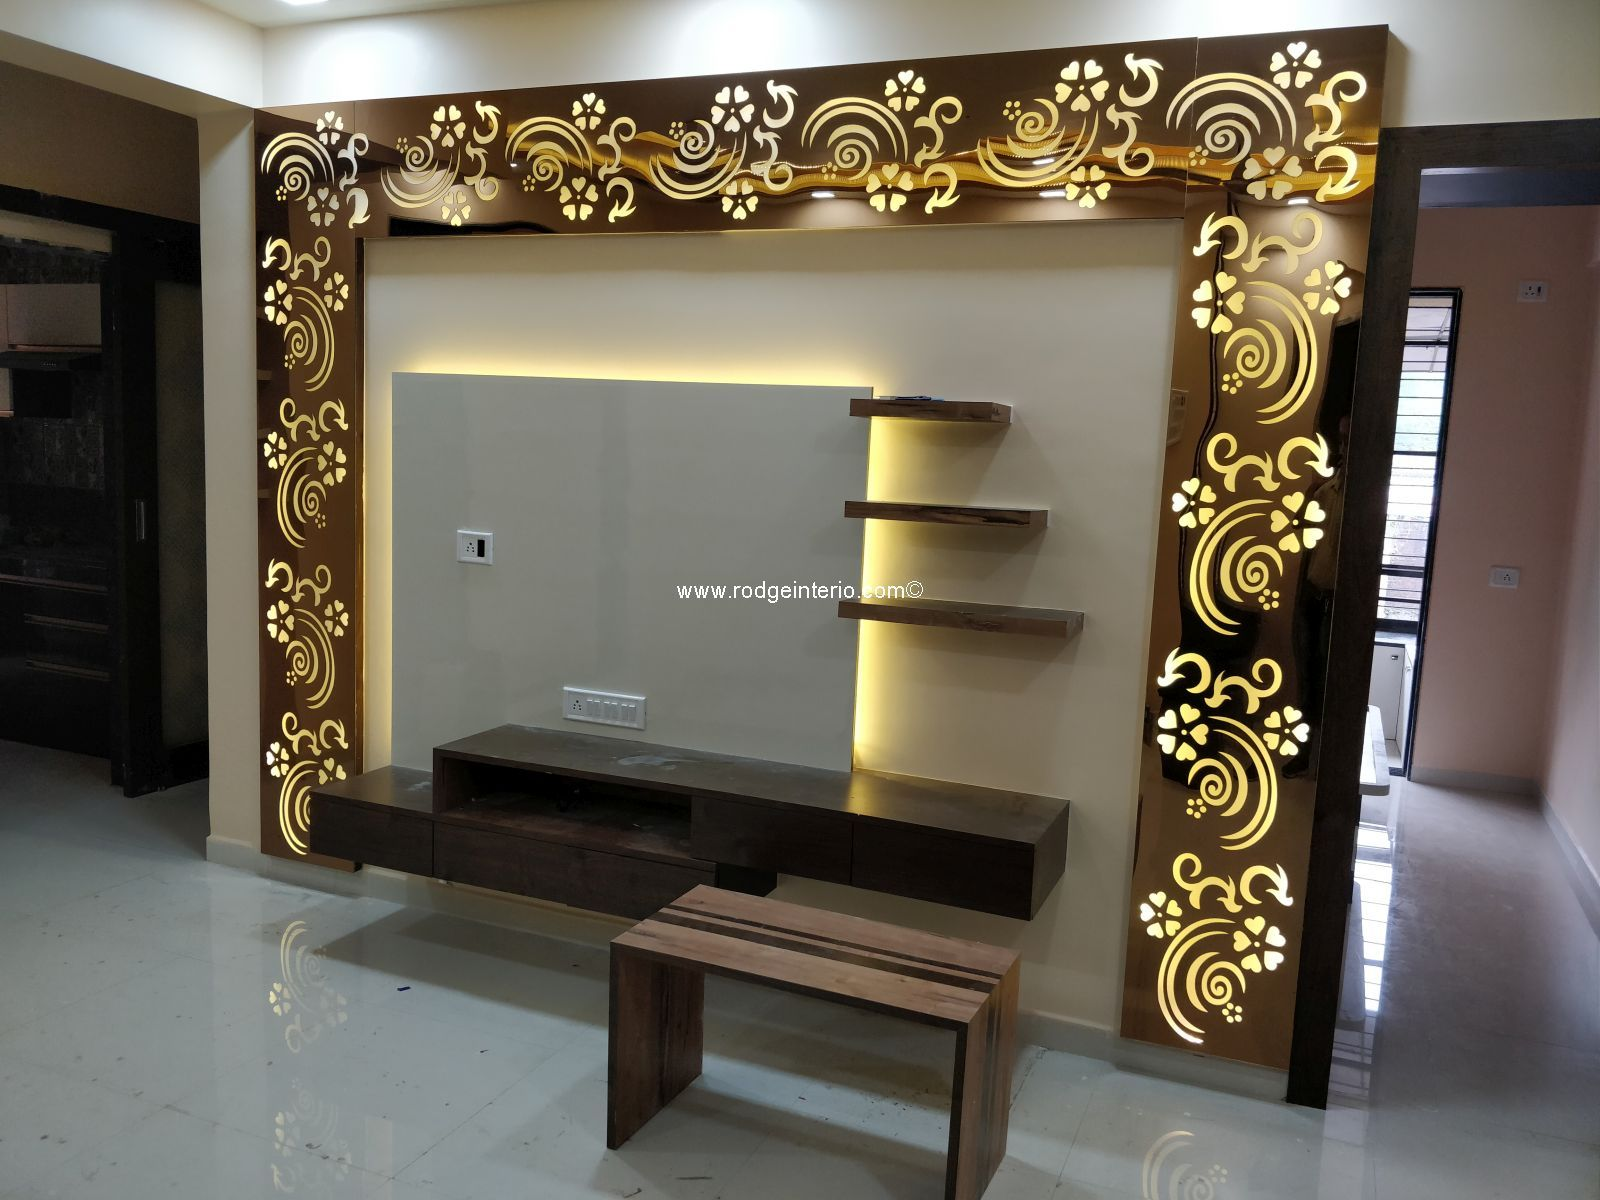 Rodge Interio Residential And Commercial Interior Designer In 2020 Lcd Wall Design Modern Tv Wall Units Wall Tv Unit Design